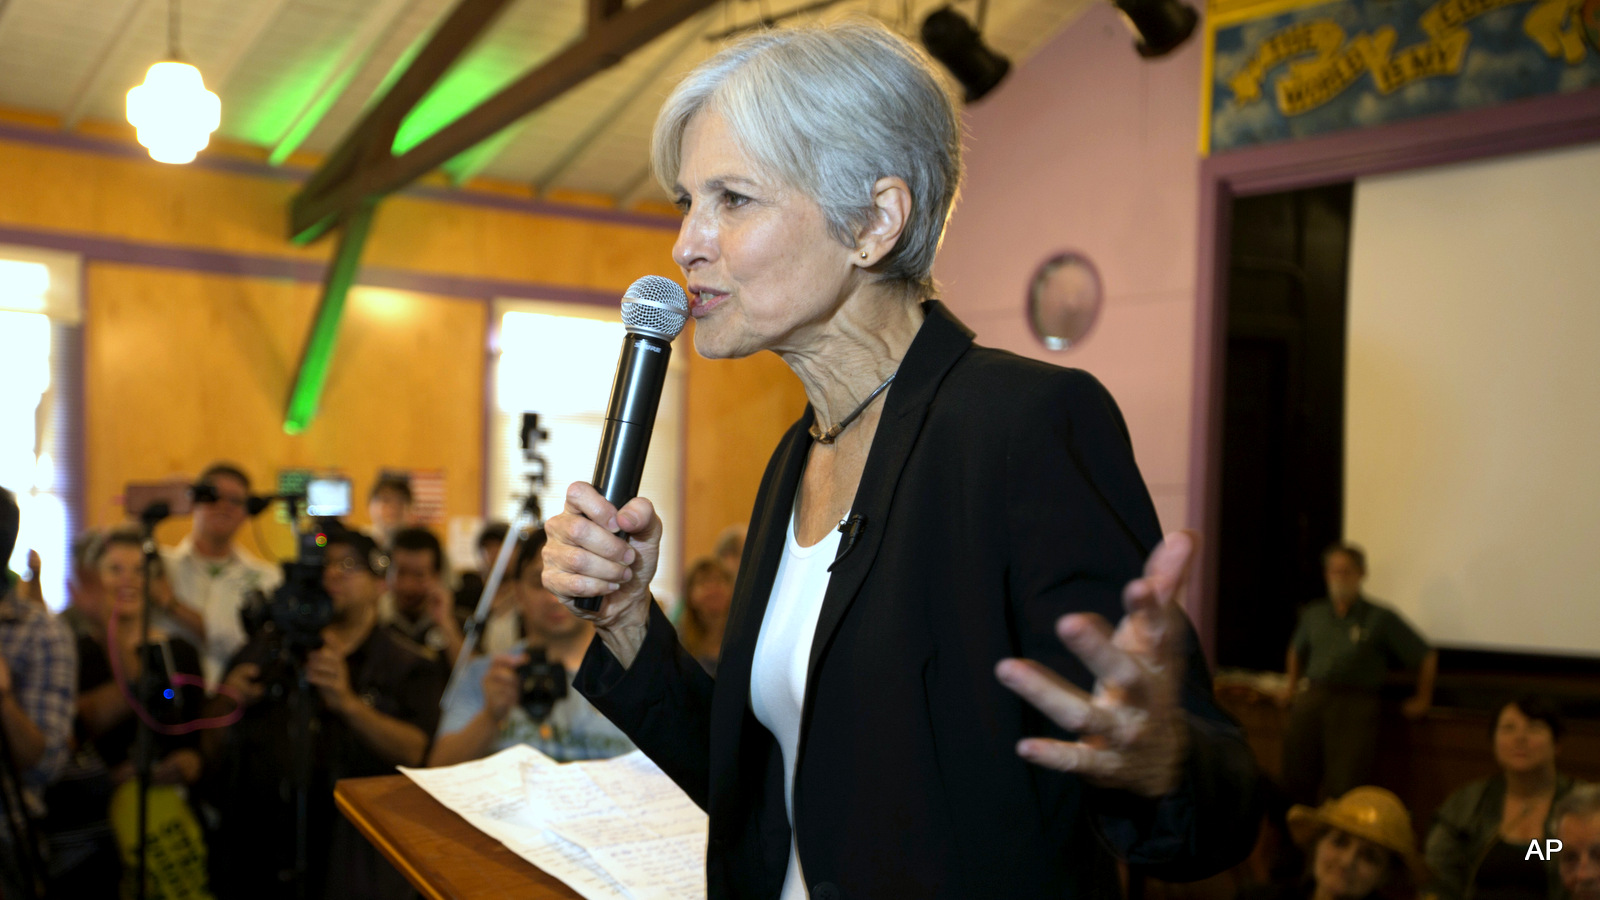 Green party presidential candidate Jill Stein delivers a stump speech to her supporters during a campaign stop at Humanist Hall in Oakland, Calif. on Thursday, Oct. 6, 2016.